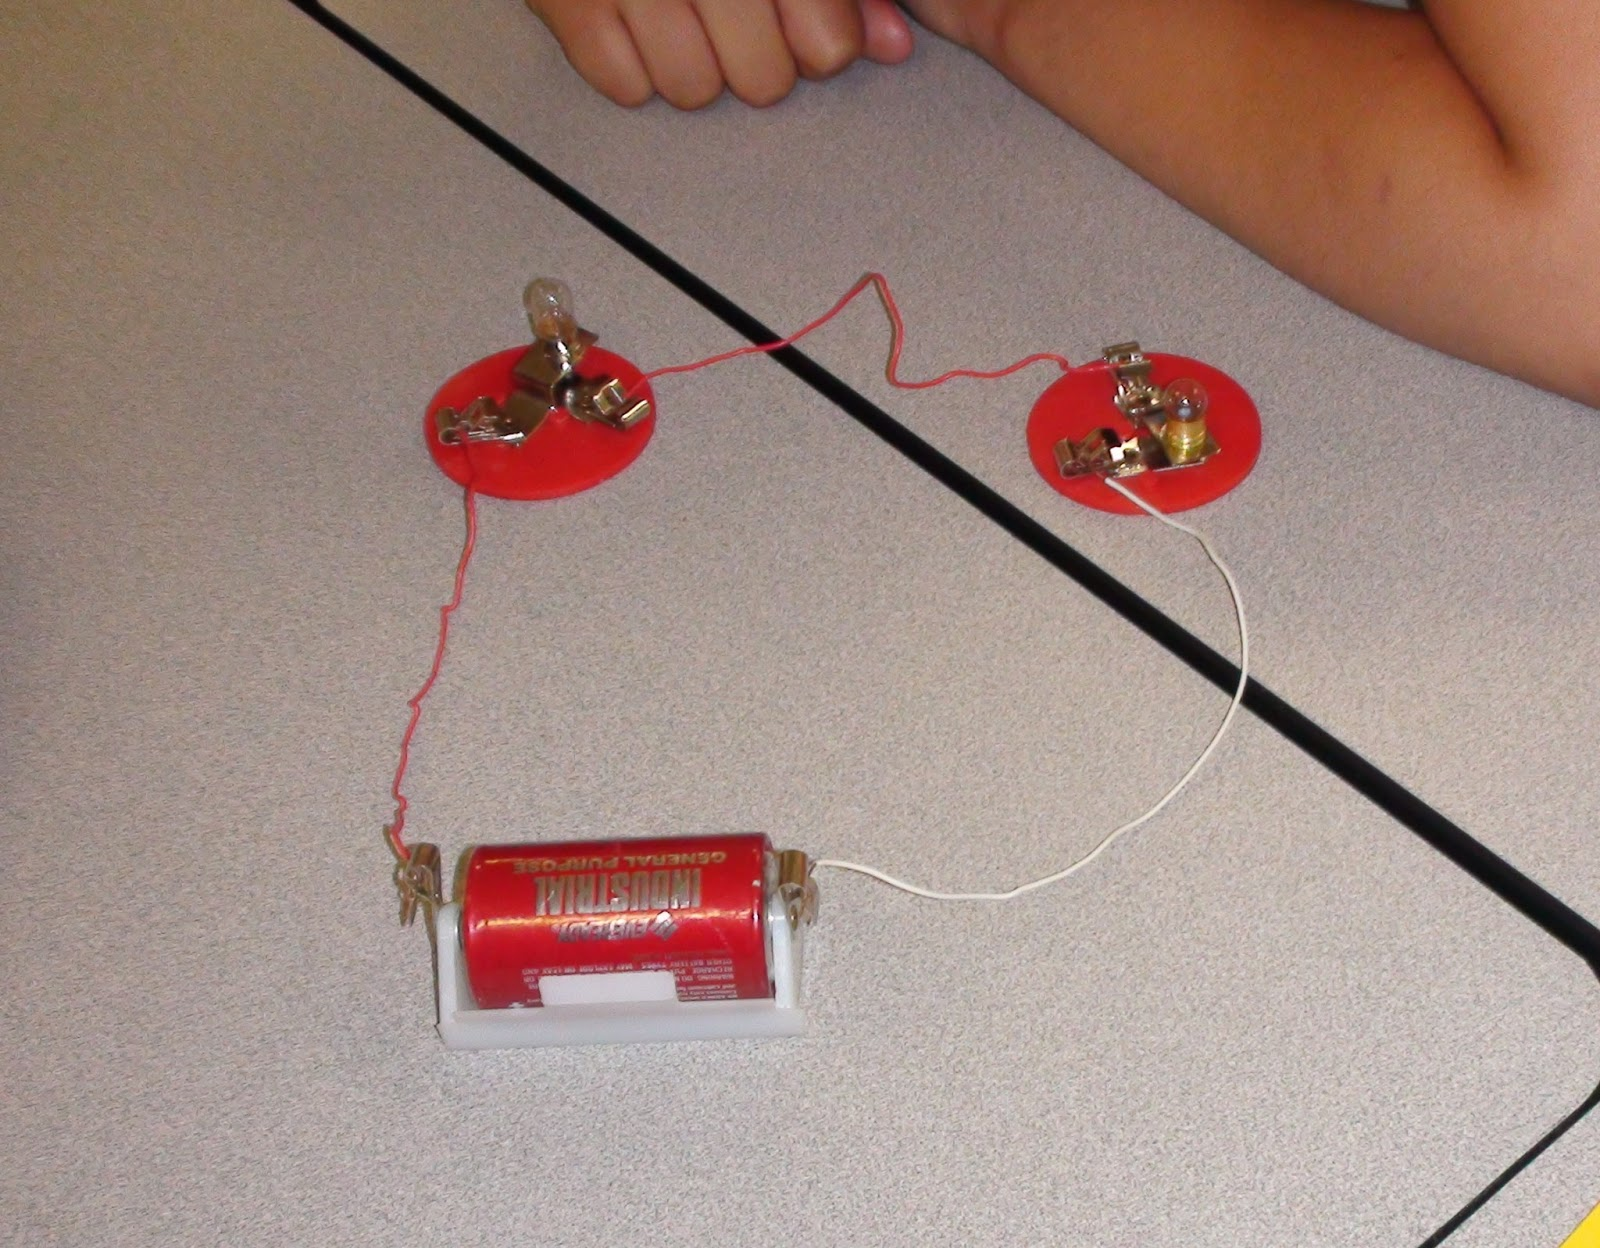 mrs wilson s class series and parallel circuits rh beccawilsonsclass blogspot com